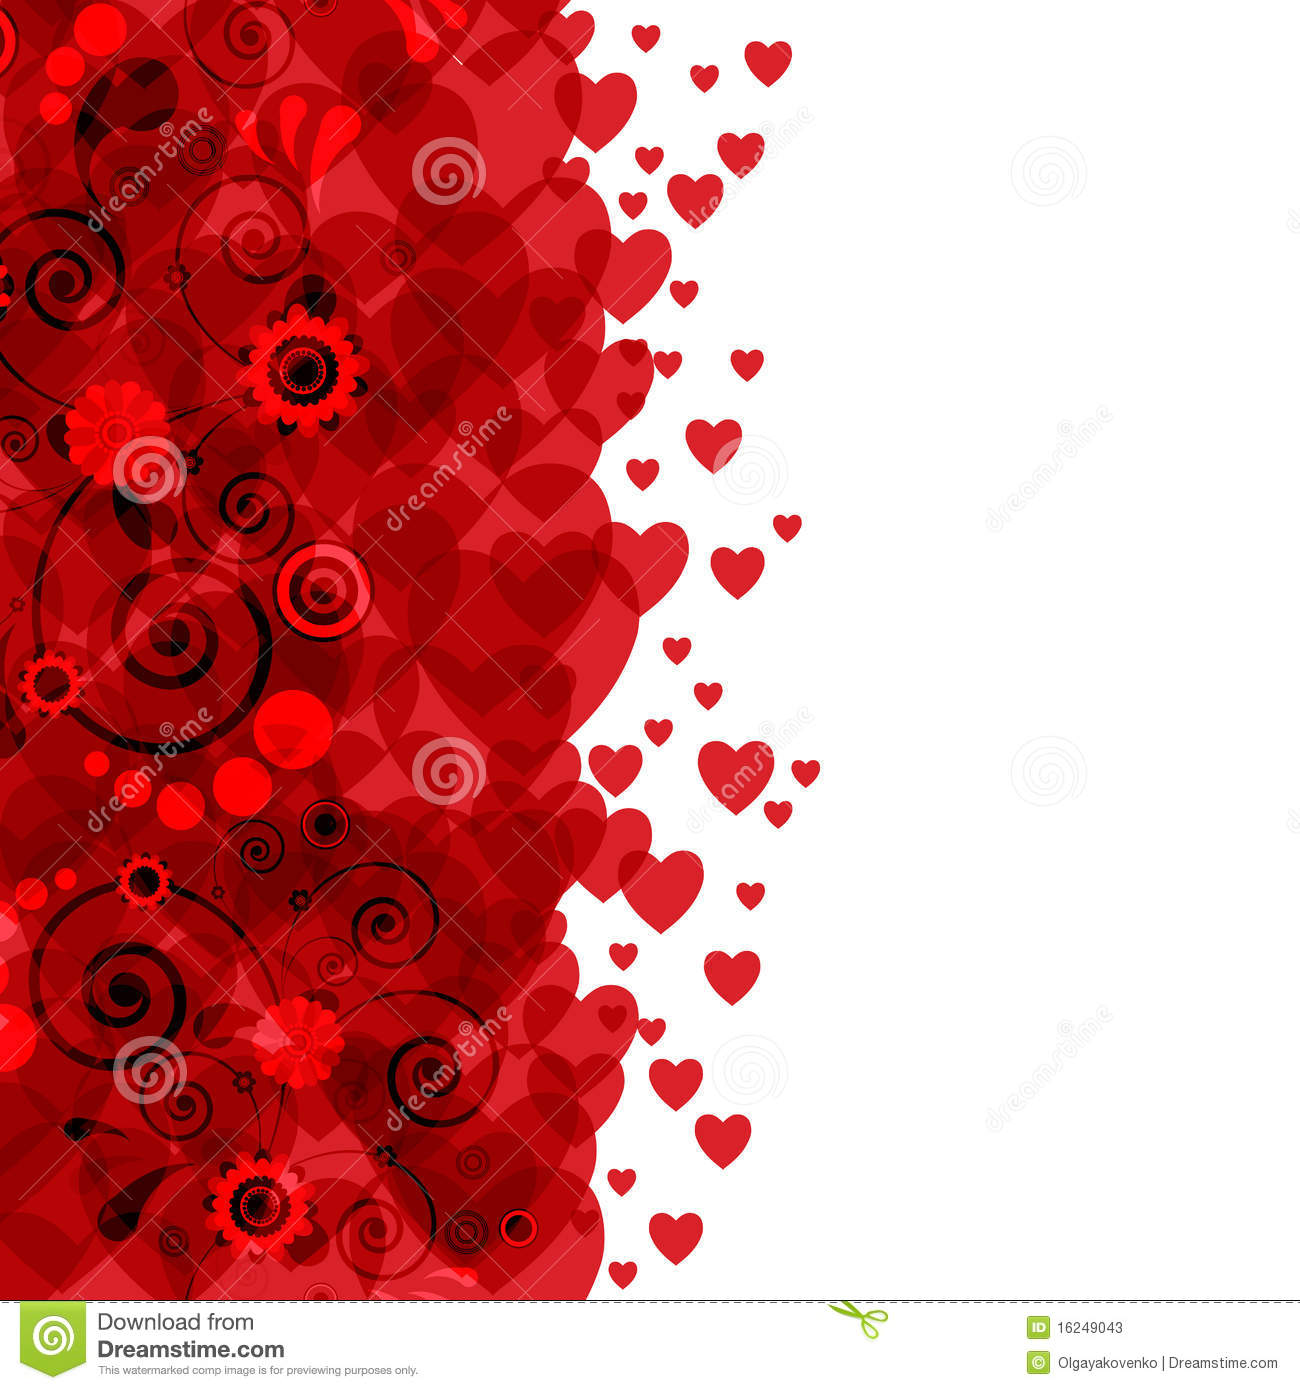 Background Hearts And Flowers Stock s Image